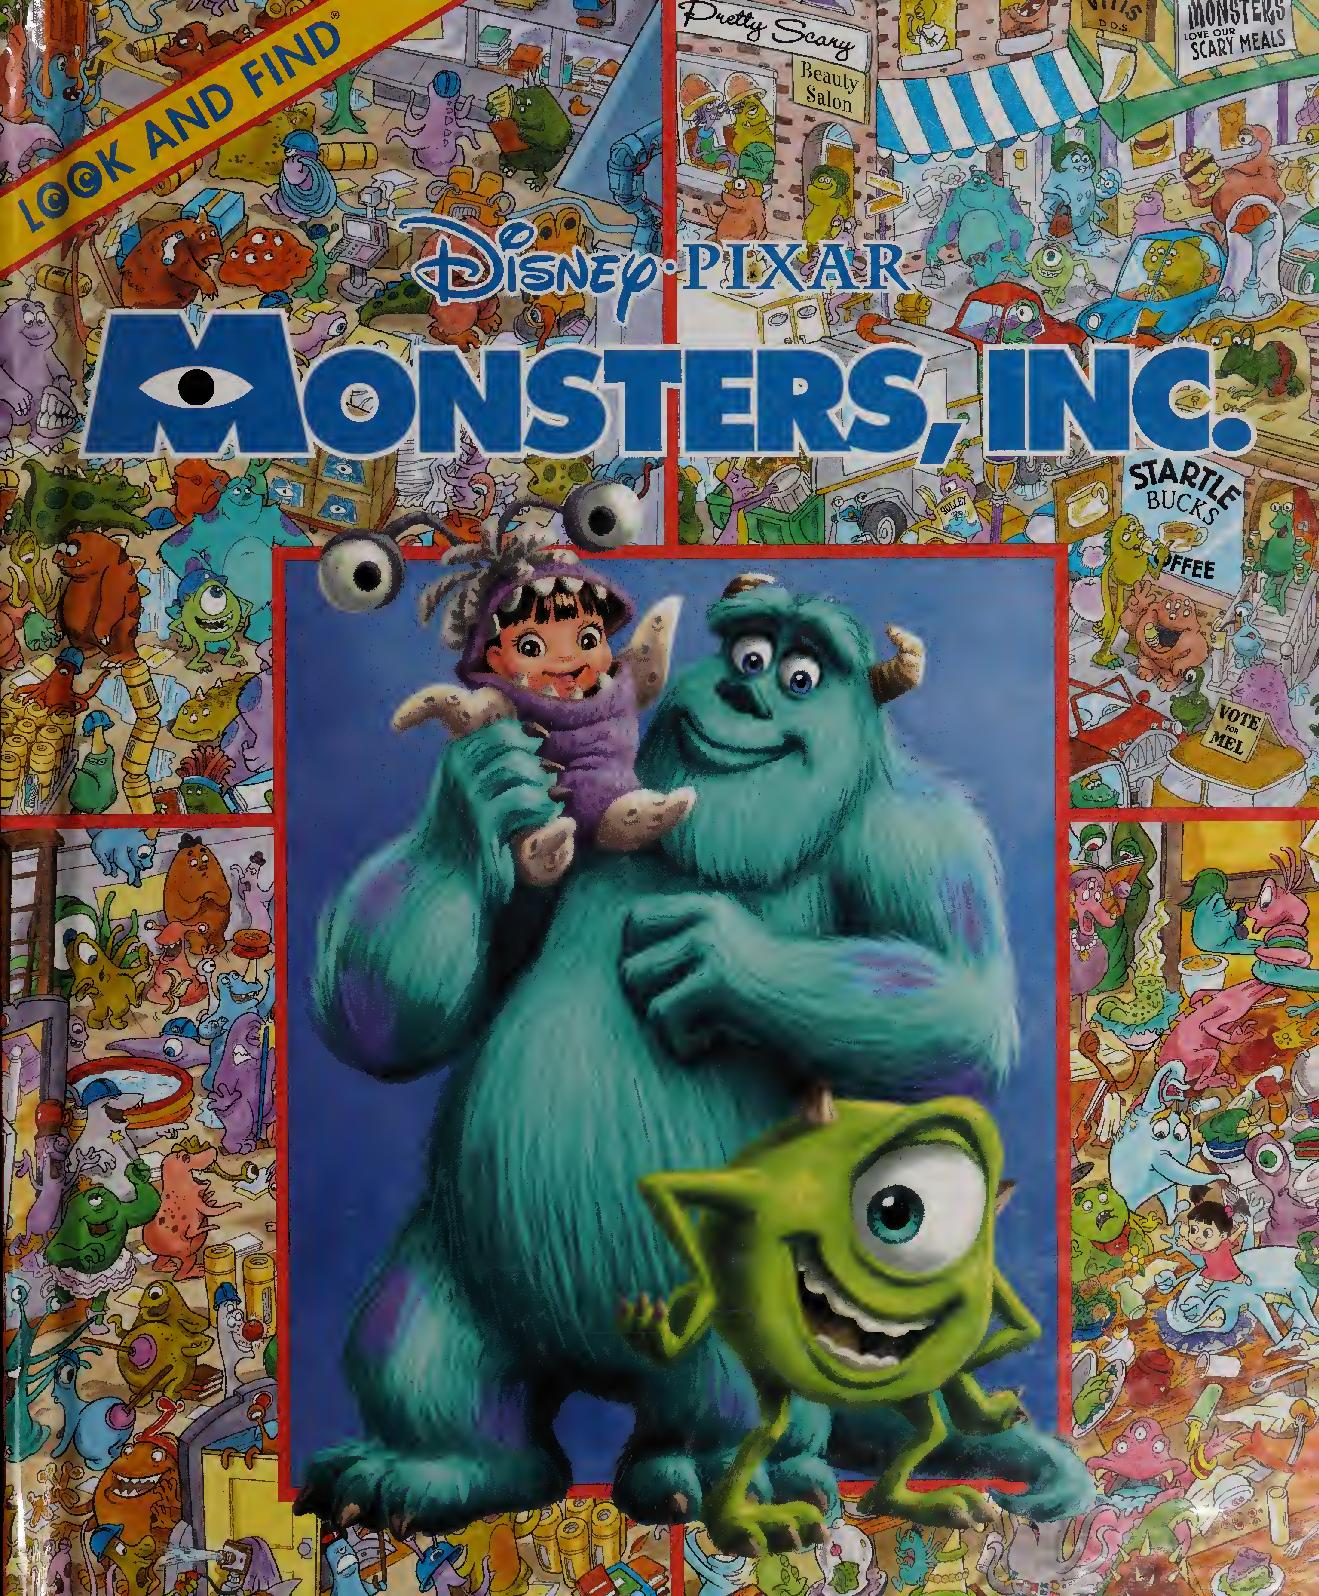 Calameo Look And Find Disney Pixar Monsters Inc